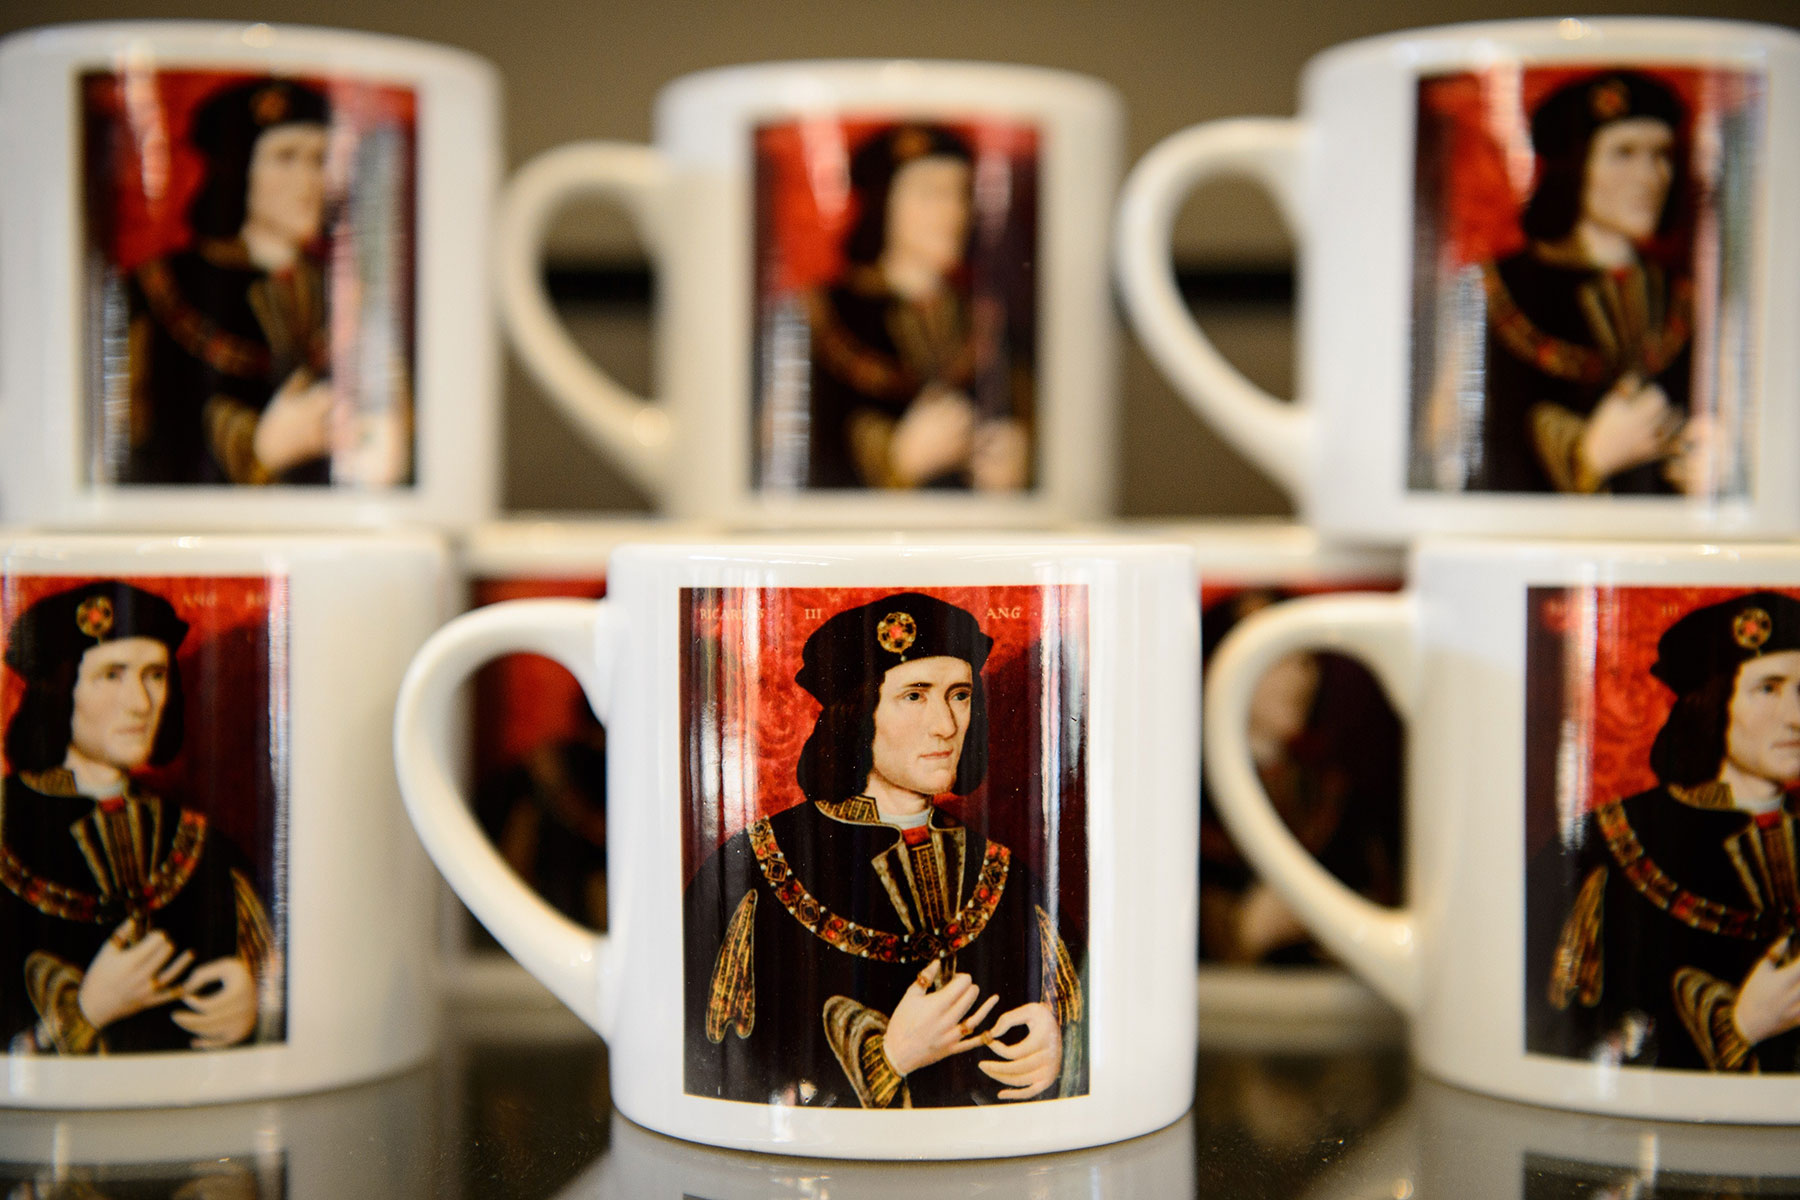 Souvenirs from the King Richard III visitor centre in Leicester.